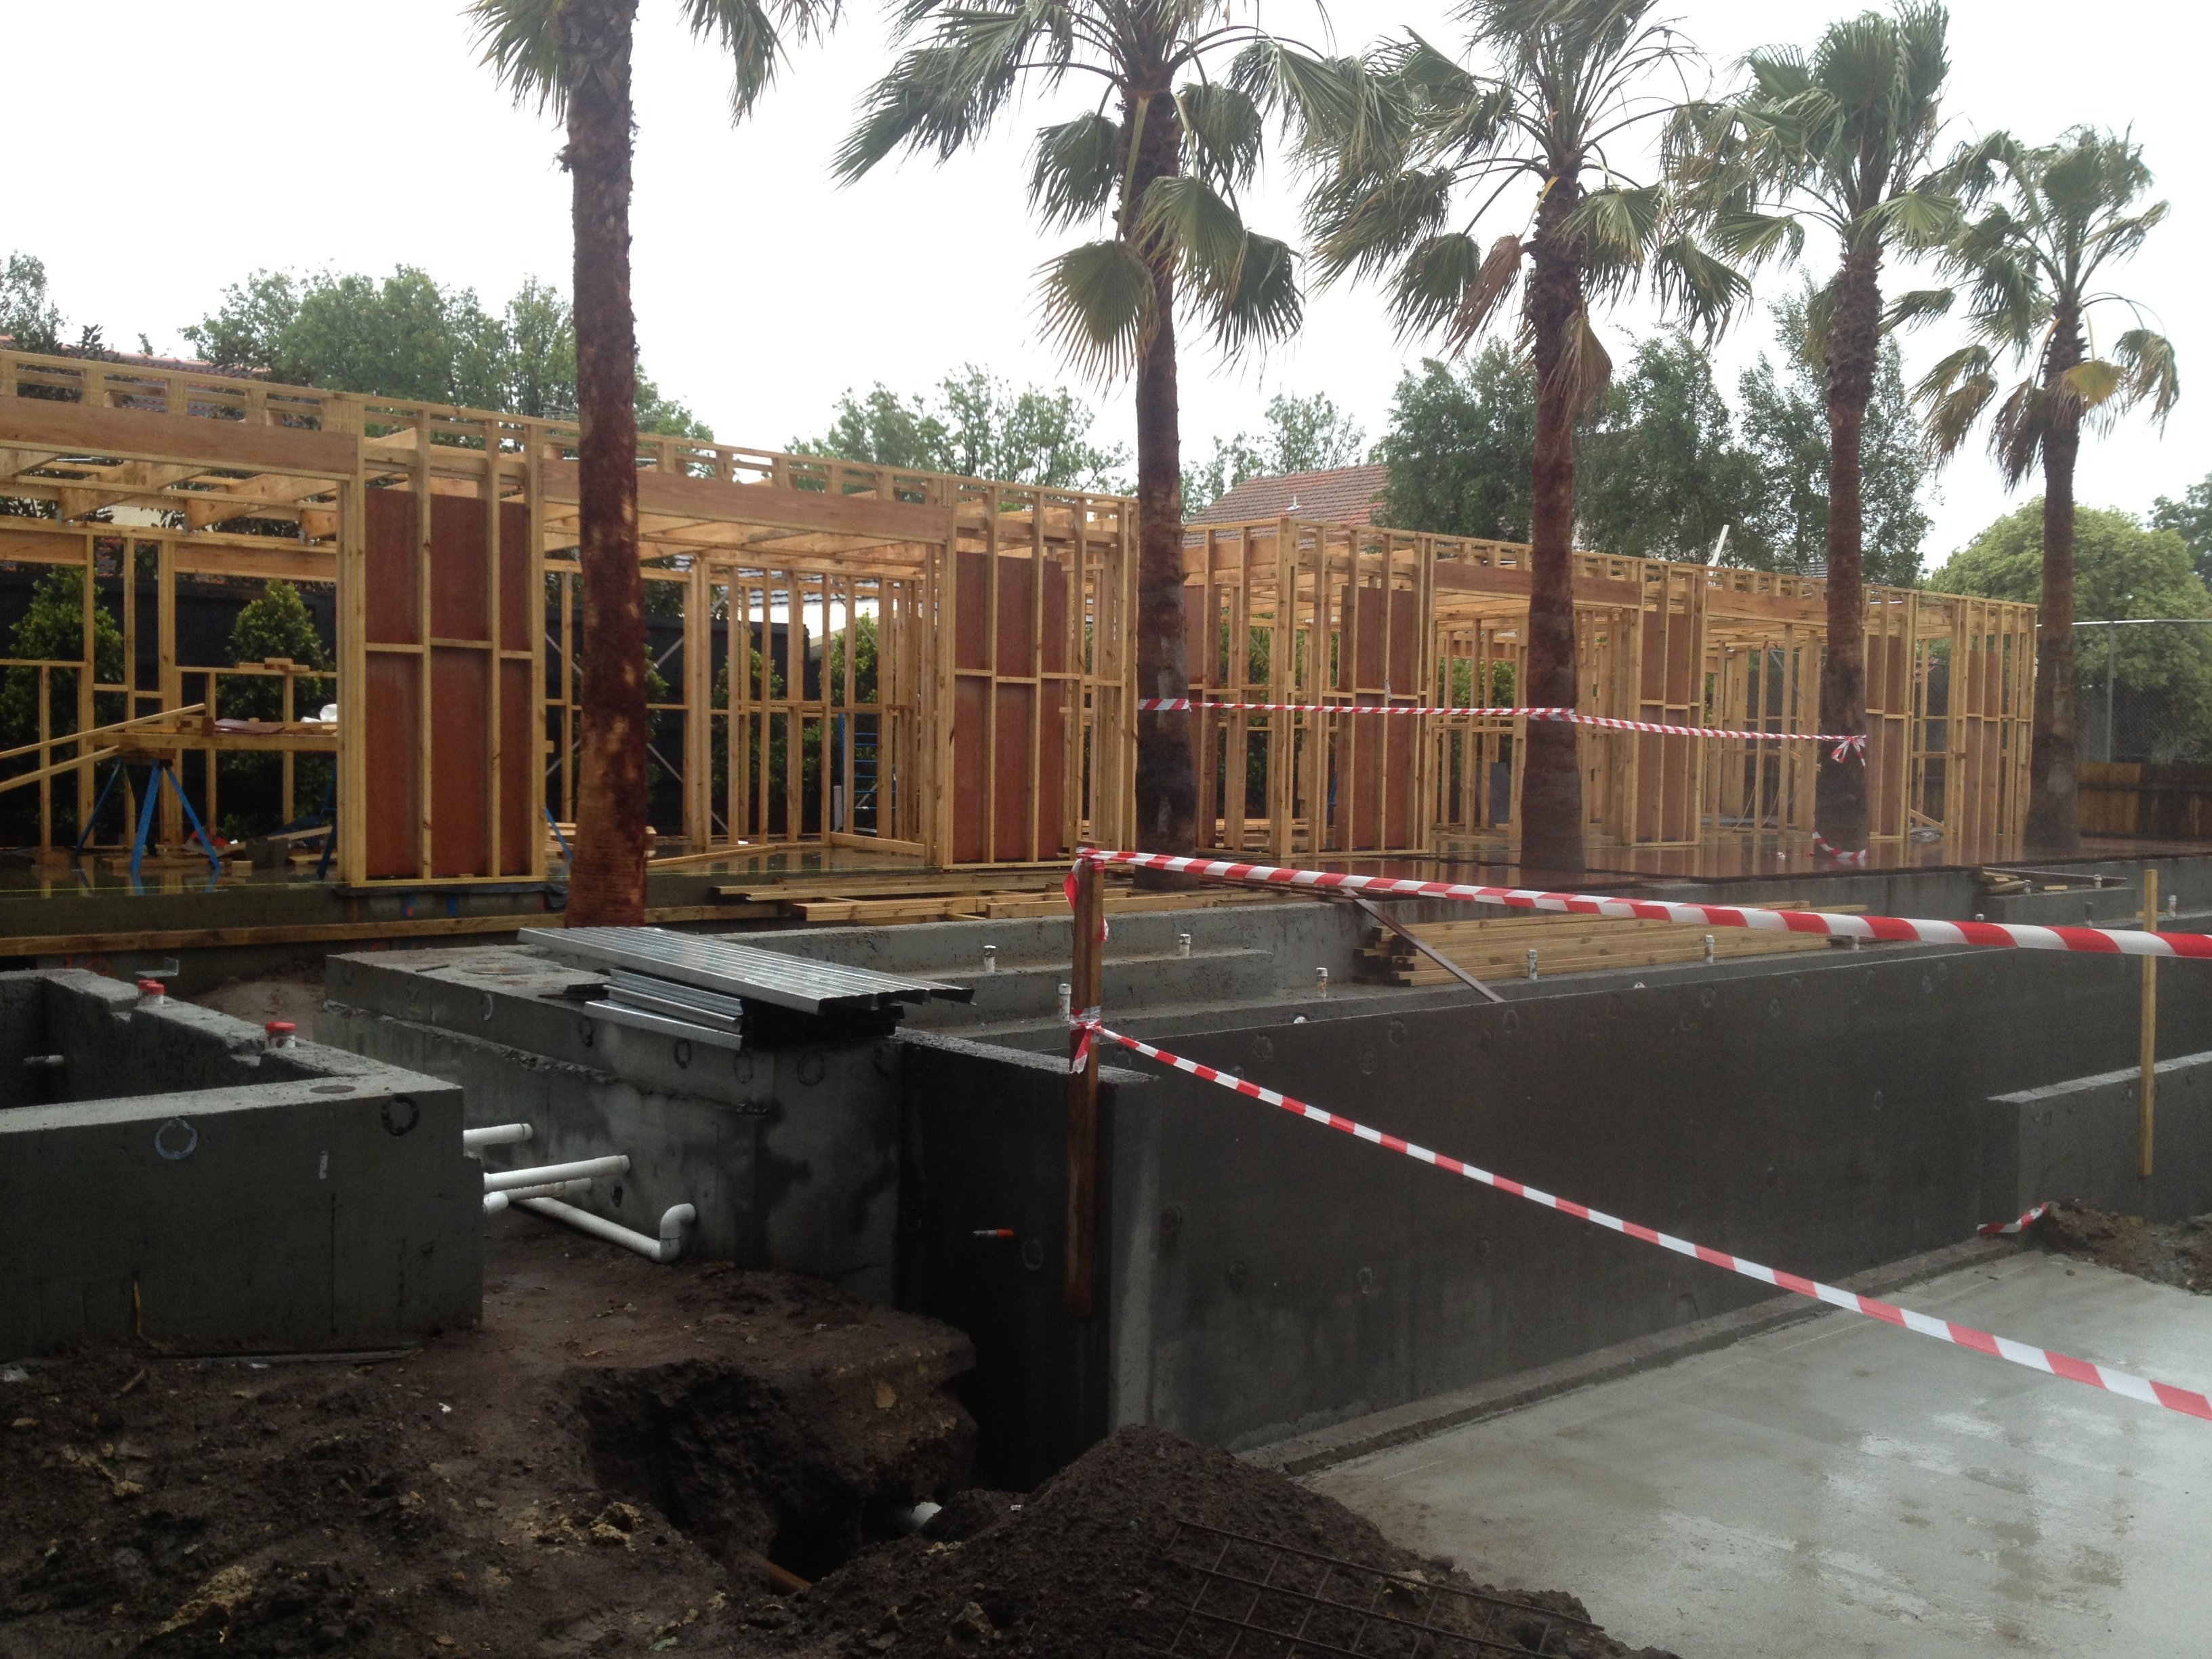 Screw piles used to support foundations for pool house, deck and swimming pool itself